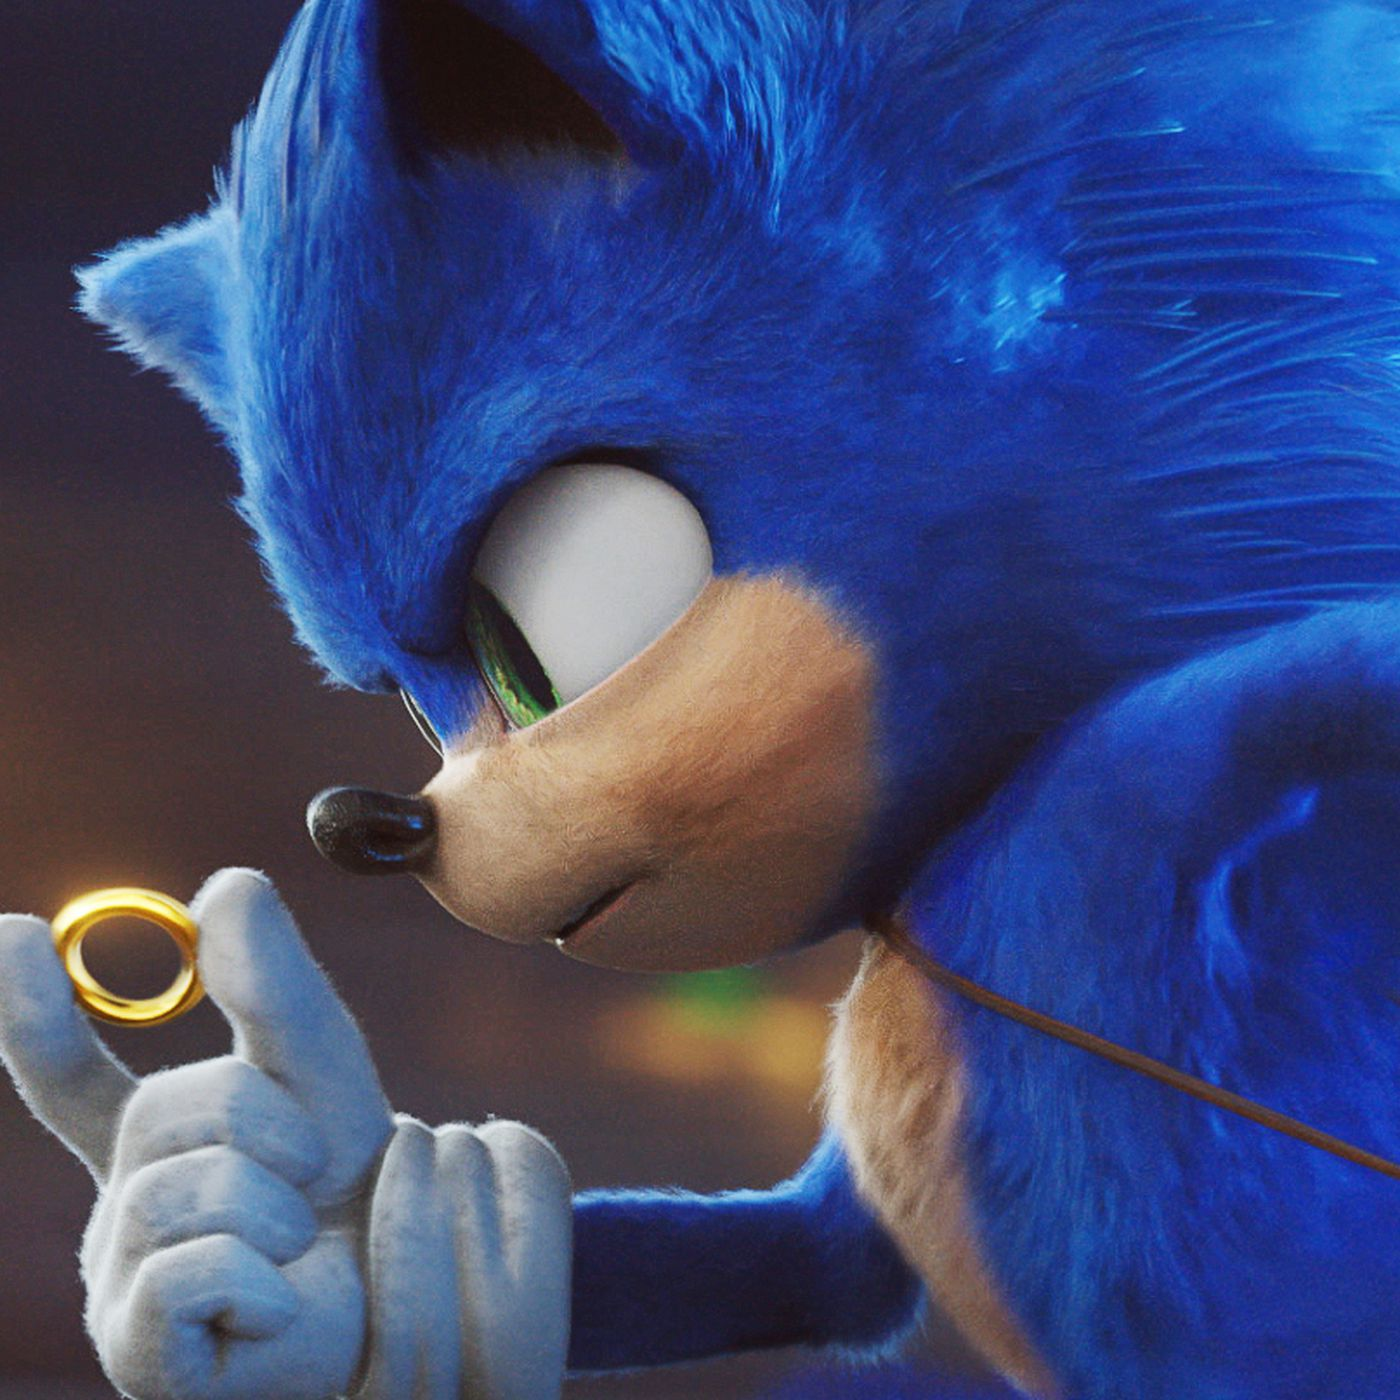 Sonic The Hedgehog Review Jim Carrey Adds Chaos To A Weird Kids Movie Polygon